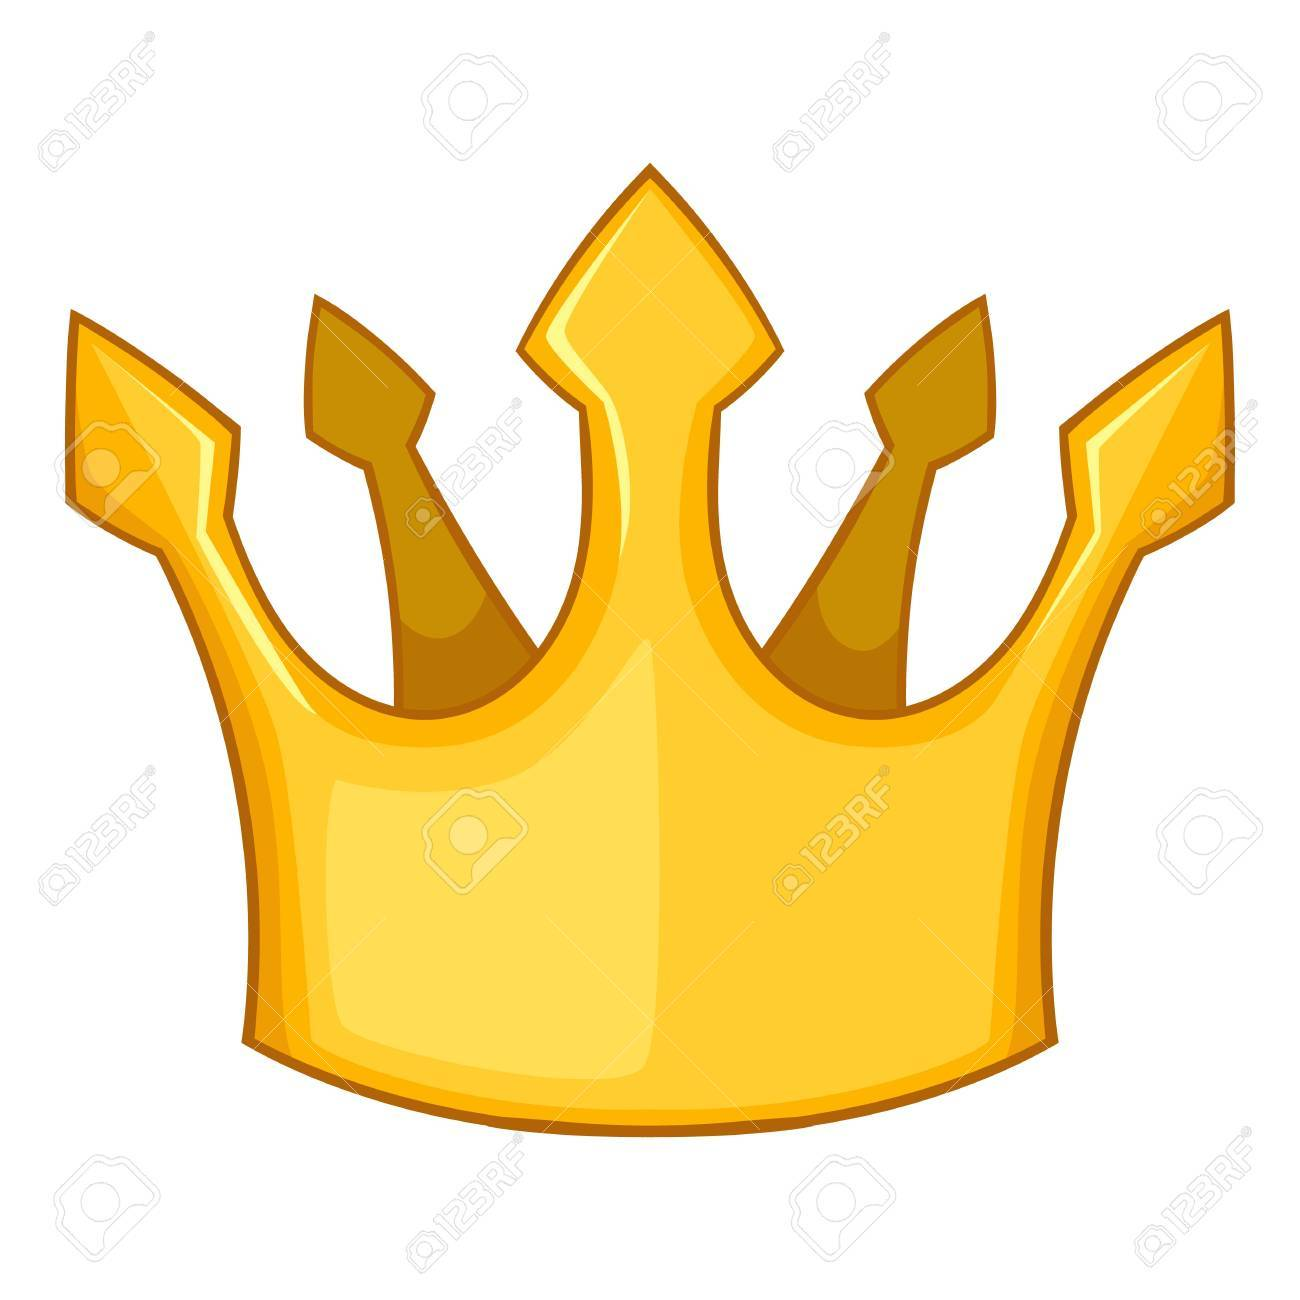 Knight Crown Icon Cartoon Illustration Of Knight Crown Vector Royalty Free Cliparts Vectors And Stock Illustration Image 82634878 Almost files can be used for commercial. knight crown icon cartoon illustration of knight crown vector